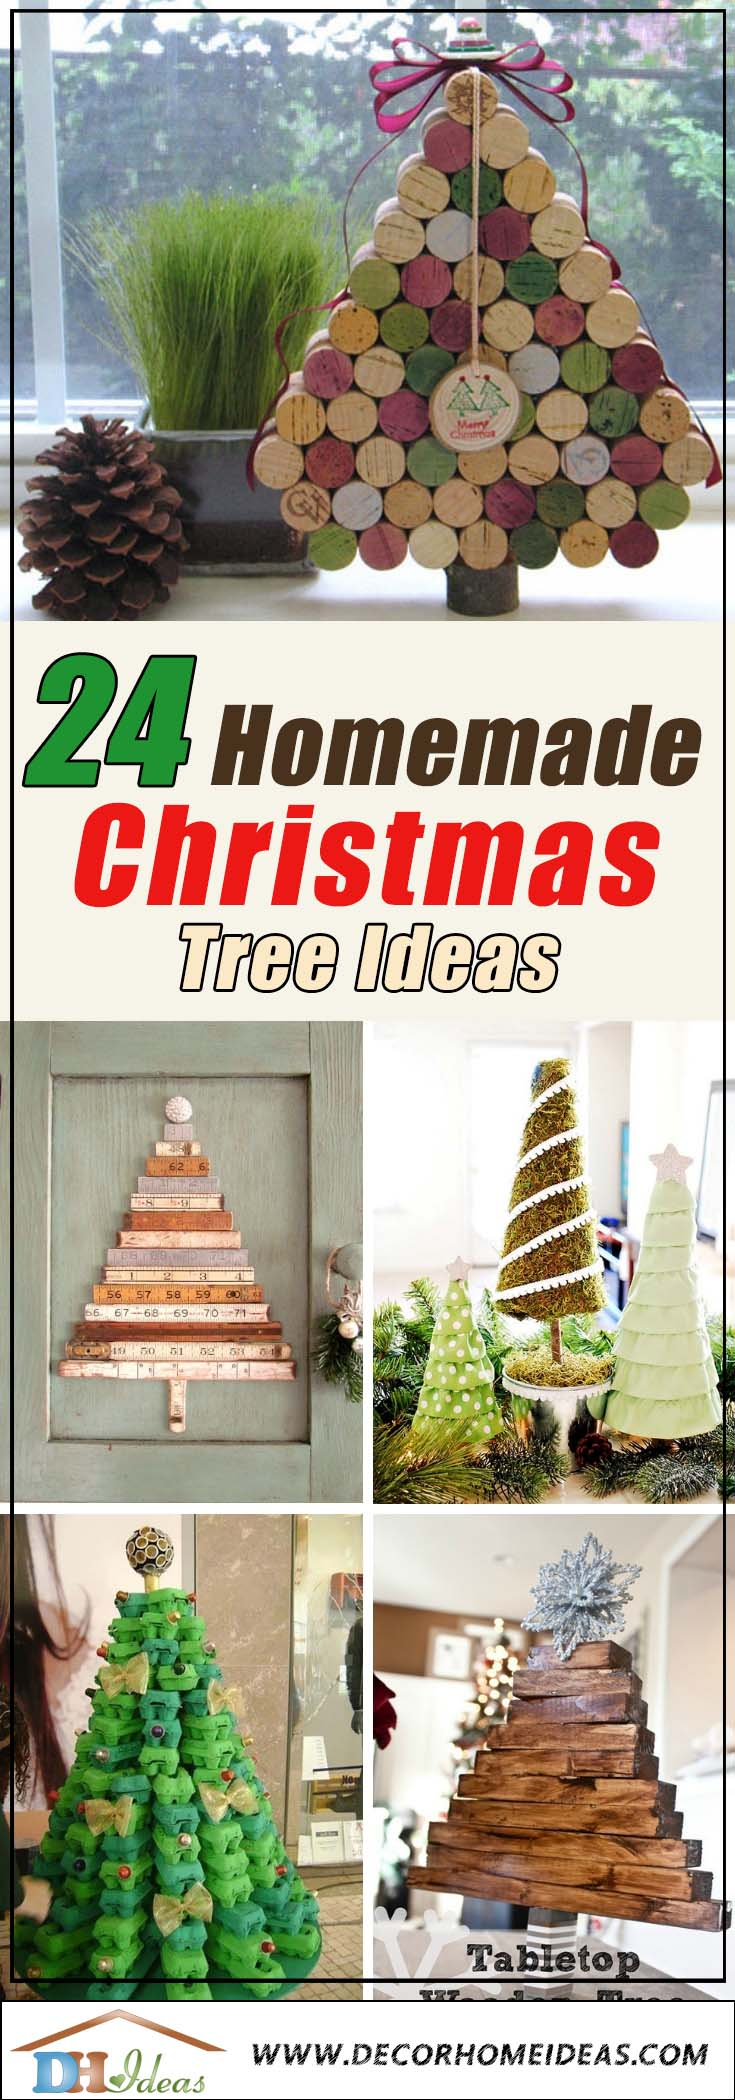 Homemade Christmas Trees #Christmas #Christmastree #homemade #DIY #Christmasdecor #decorhomeideas